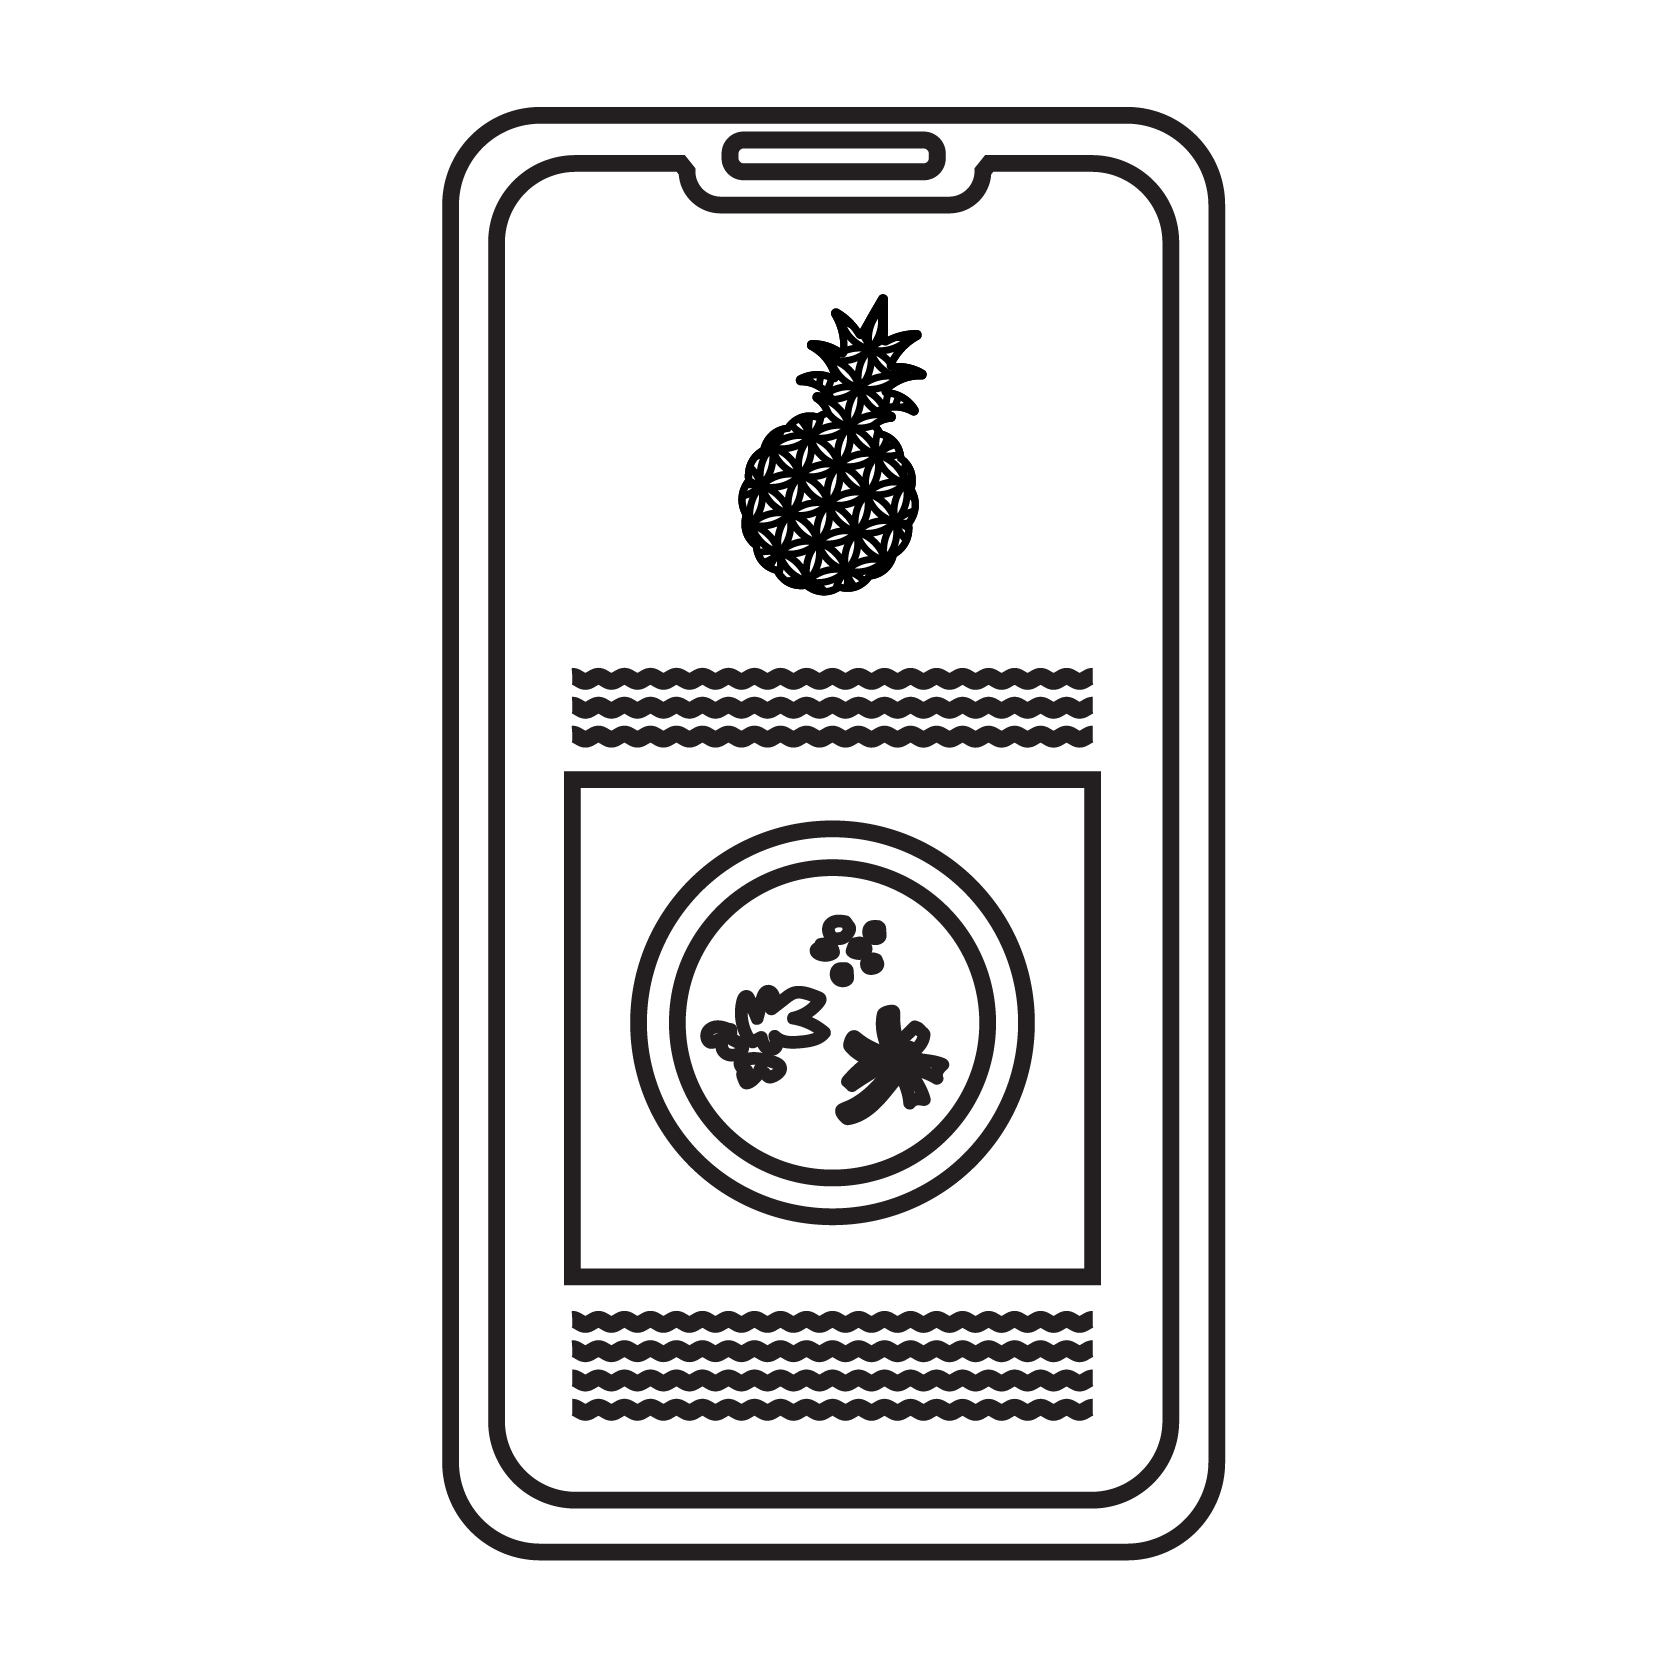 An Eat Fresh Chef Inc. graphic of a mobile phone with our logo and a recipe on the screen symbolizing our Health & Nutritional Services.